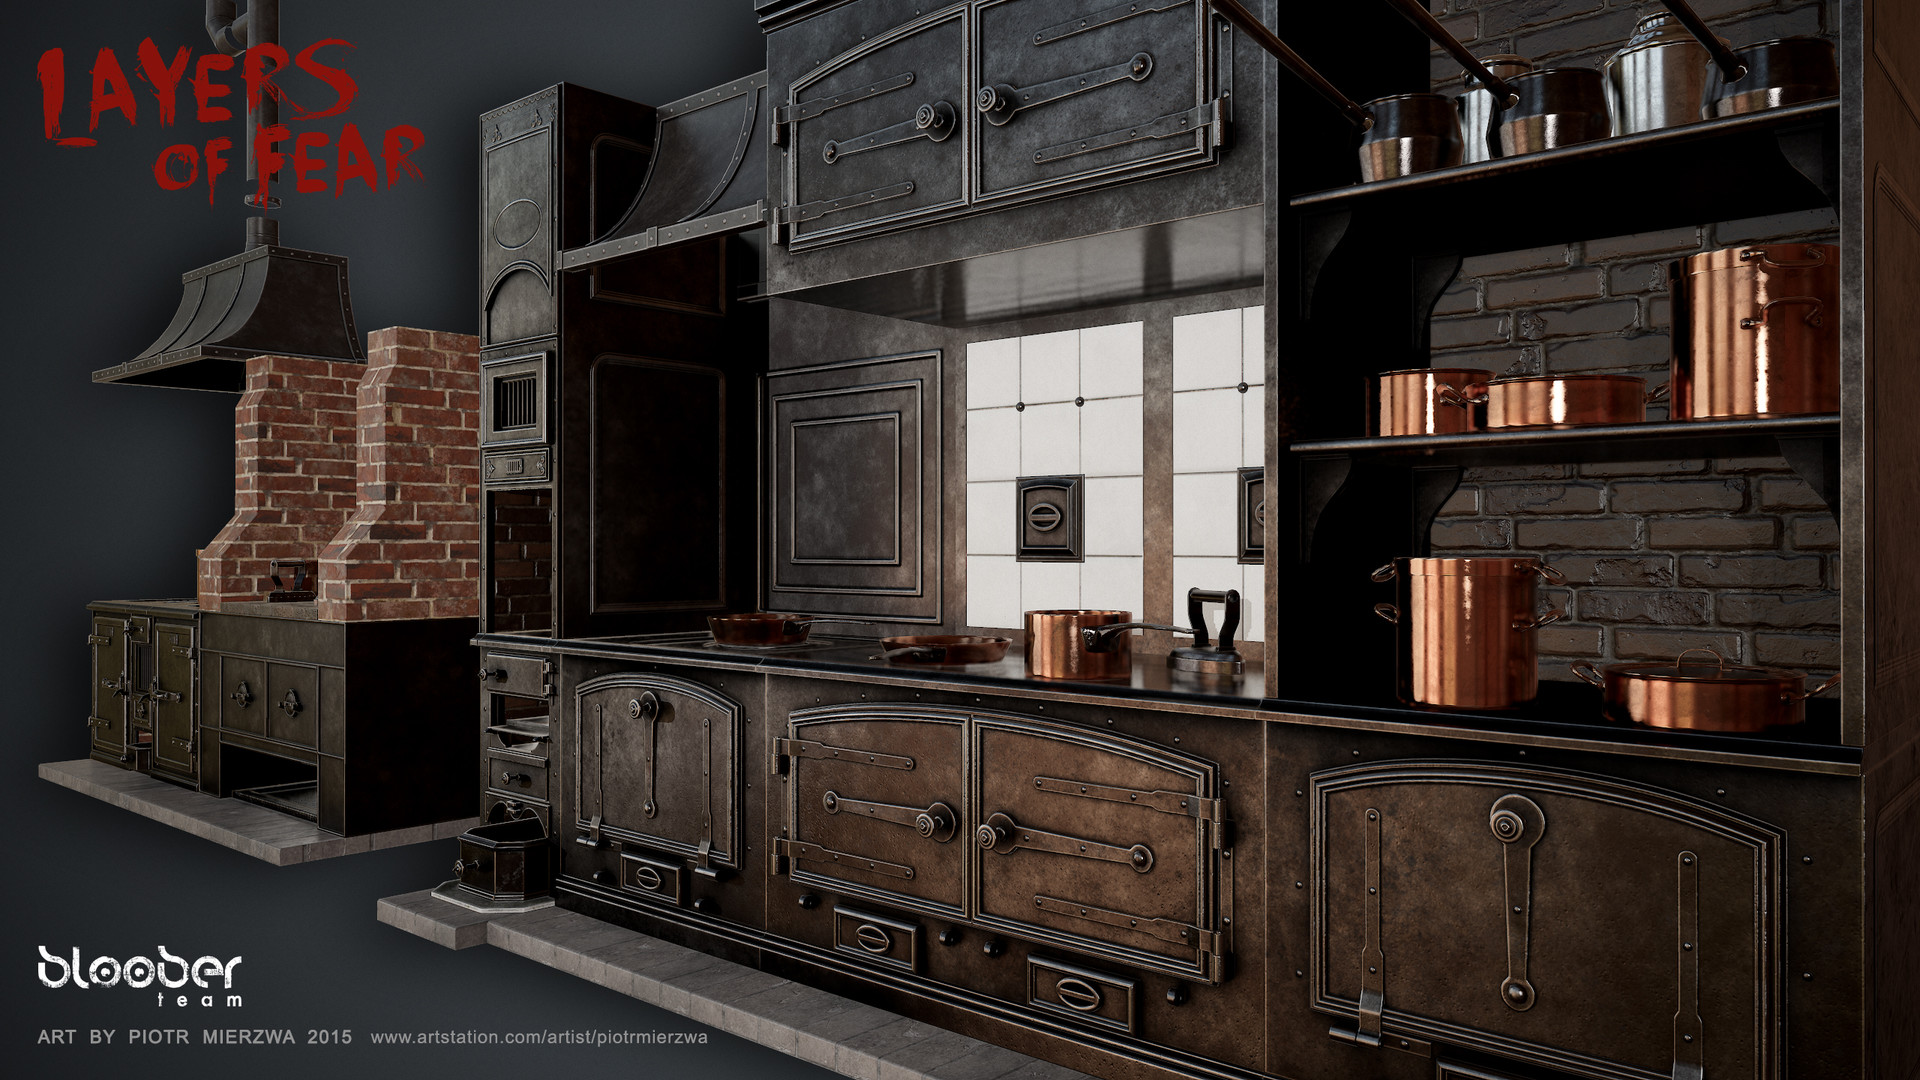 Piotr mierzwa victorian kitchen set layers of fear for House kitchen set